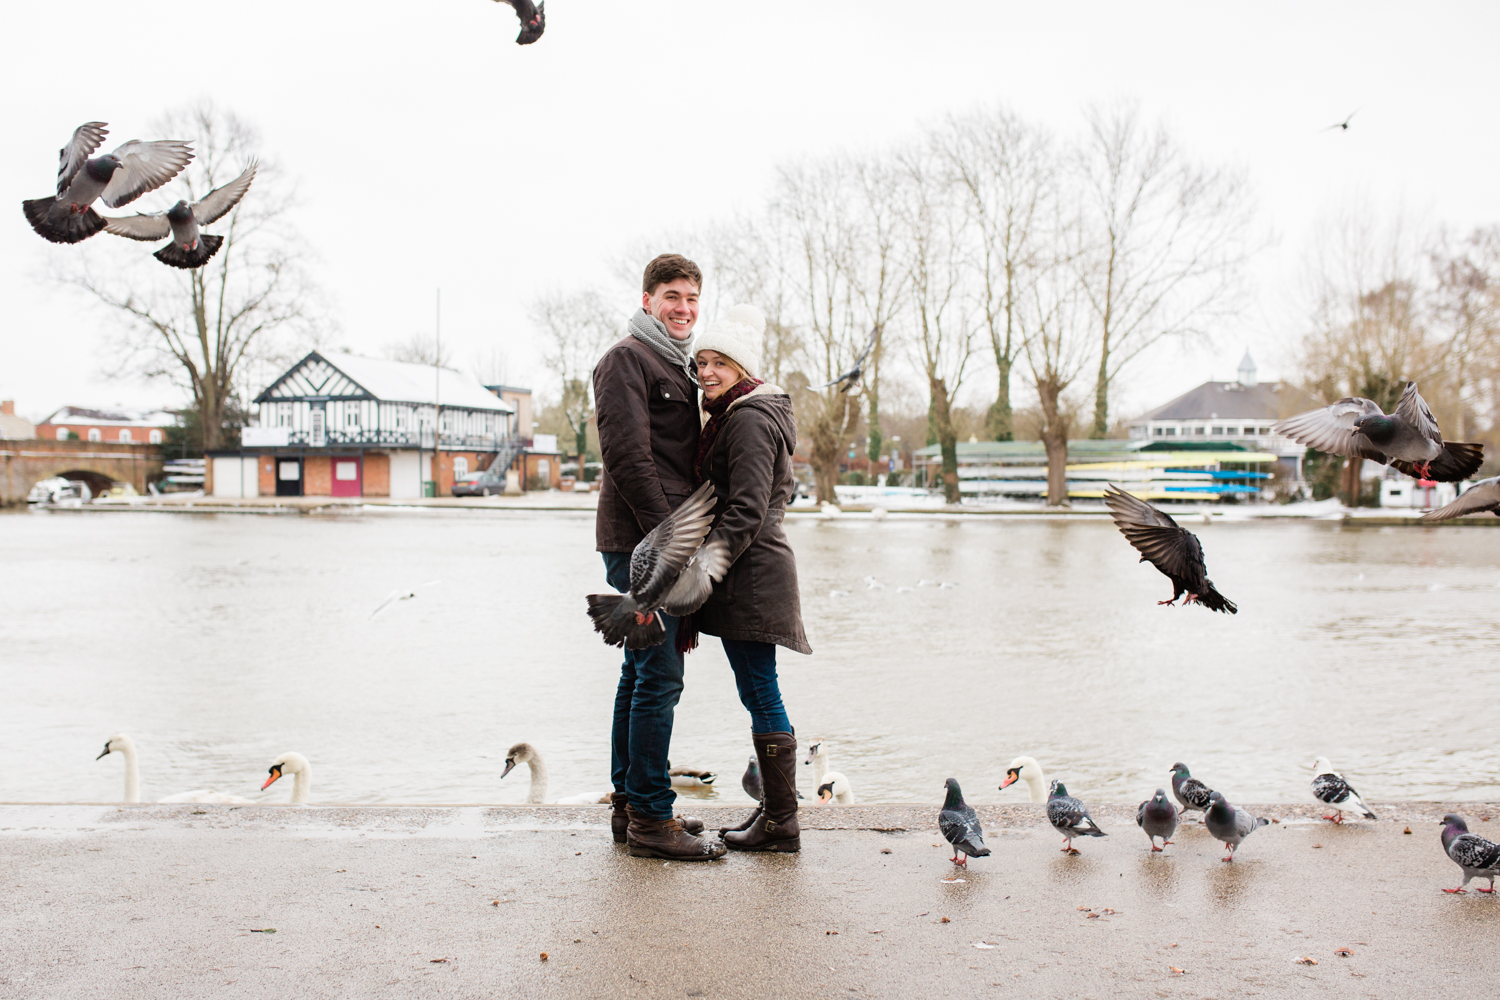 Alice & James - Stratford Upon Avon Engagement shoot - Sophie Evans Photography-26.jpg